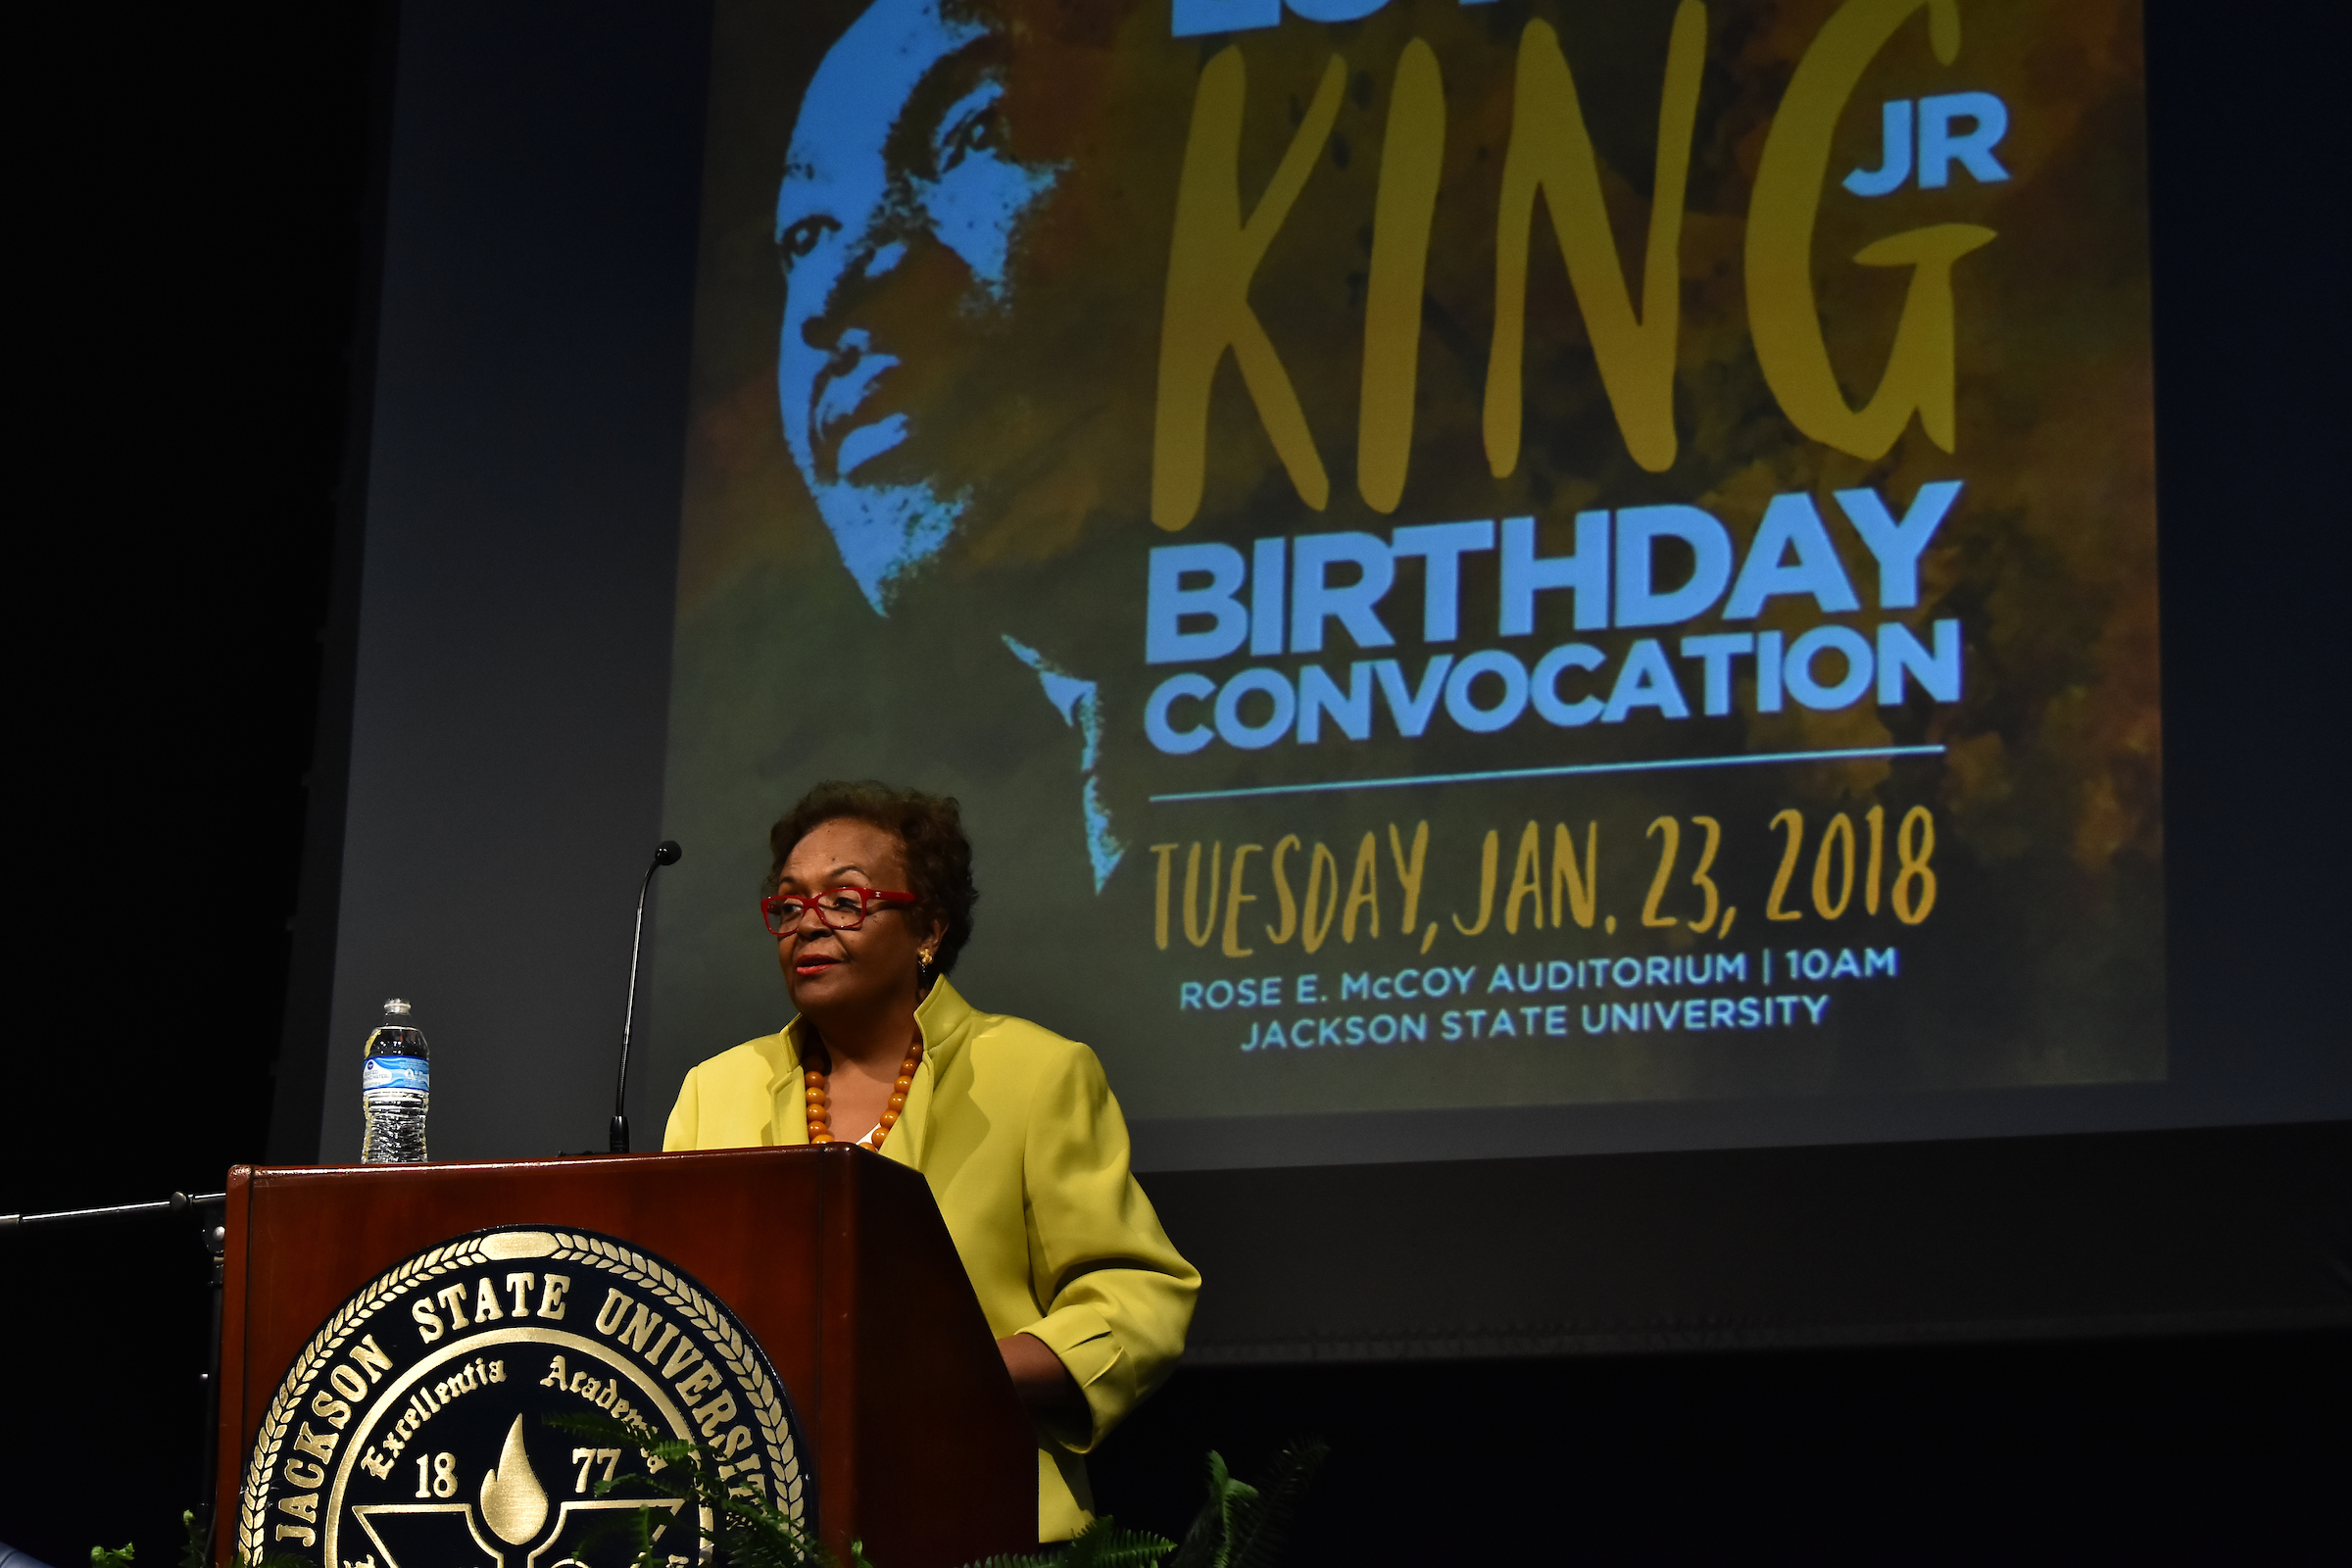 Guest speaker for the 50th Annual Martin Luther King Jr. Birthday Convocation Dr. Joyce Ladner had been expelled from JSU, then Jackson College, in 1961 for her participation in civil rights activism. (Photo by William Kelly, III/JSU)